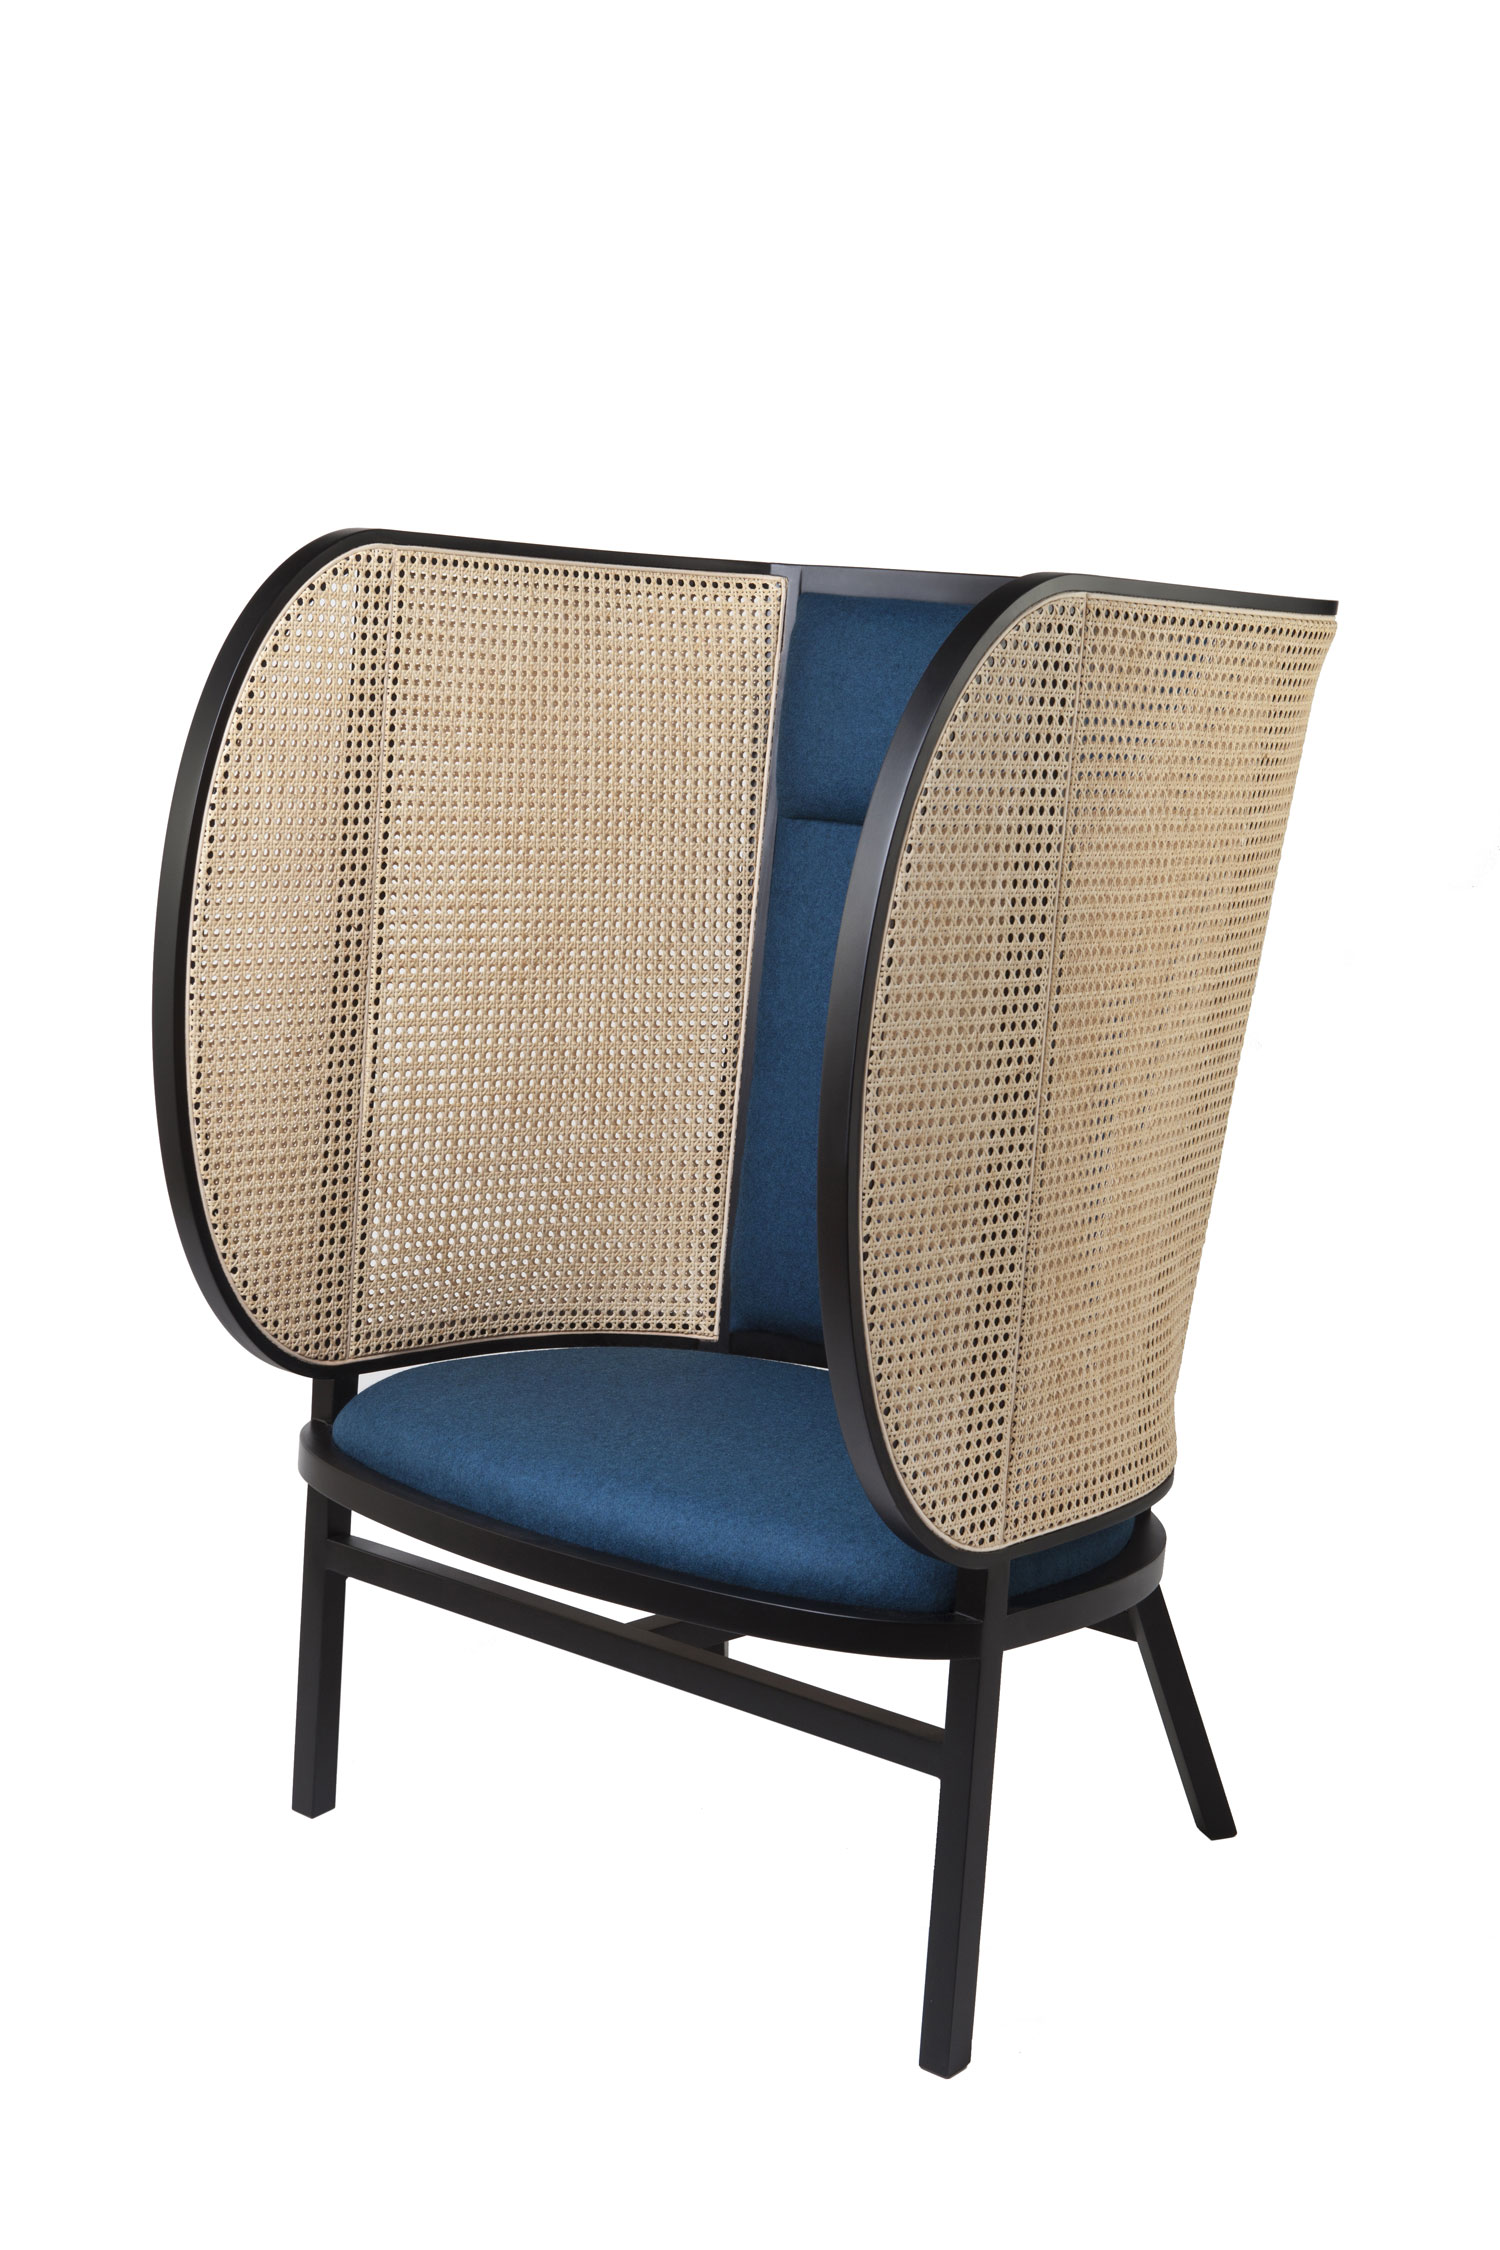 Gebruder Thonet HIDEOUT Lounge Chair by Front - Best of Salone Del Mobile 2015   Yellowtrace